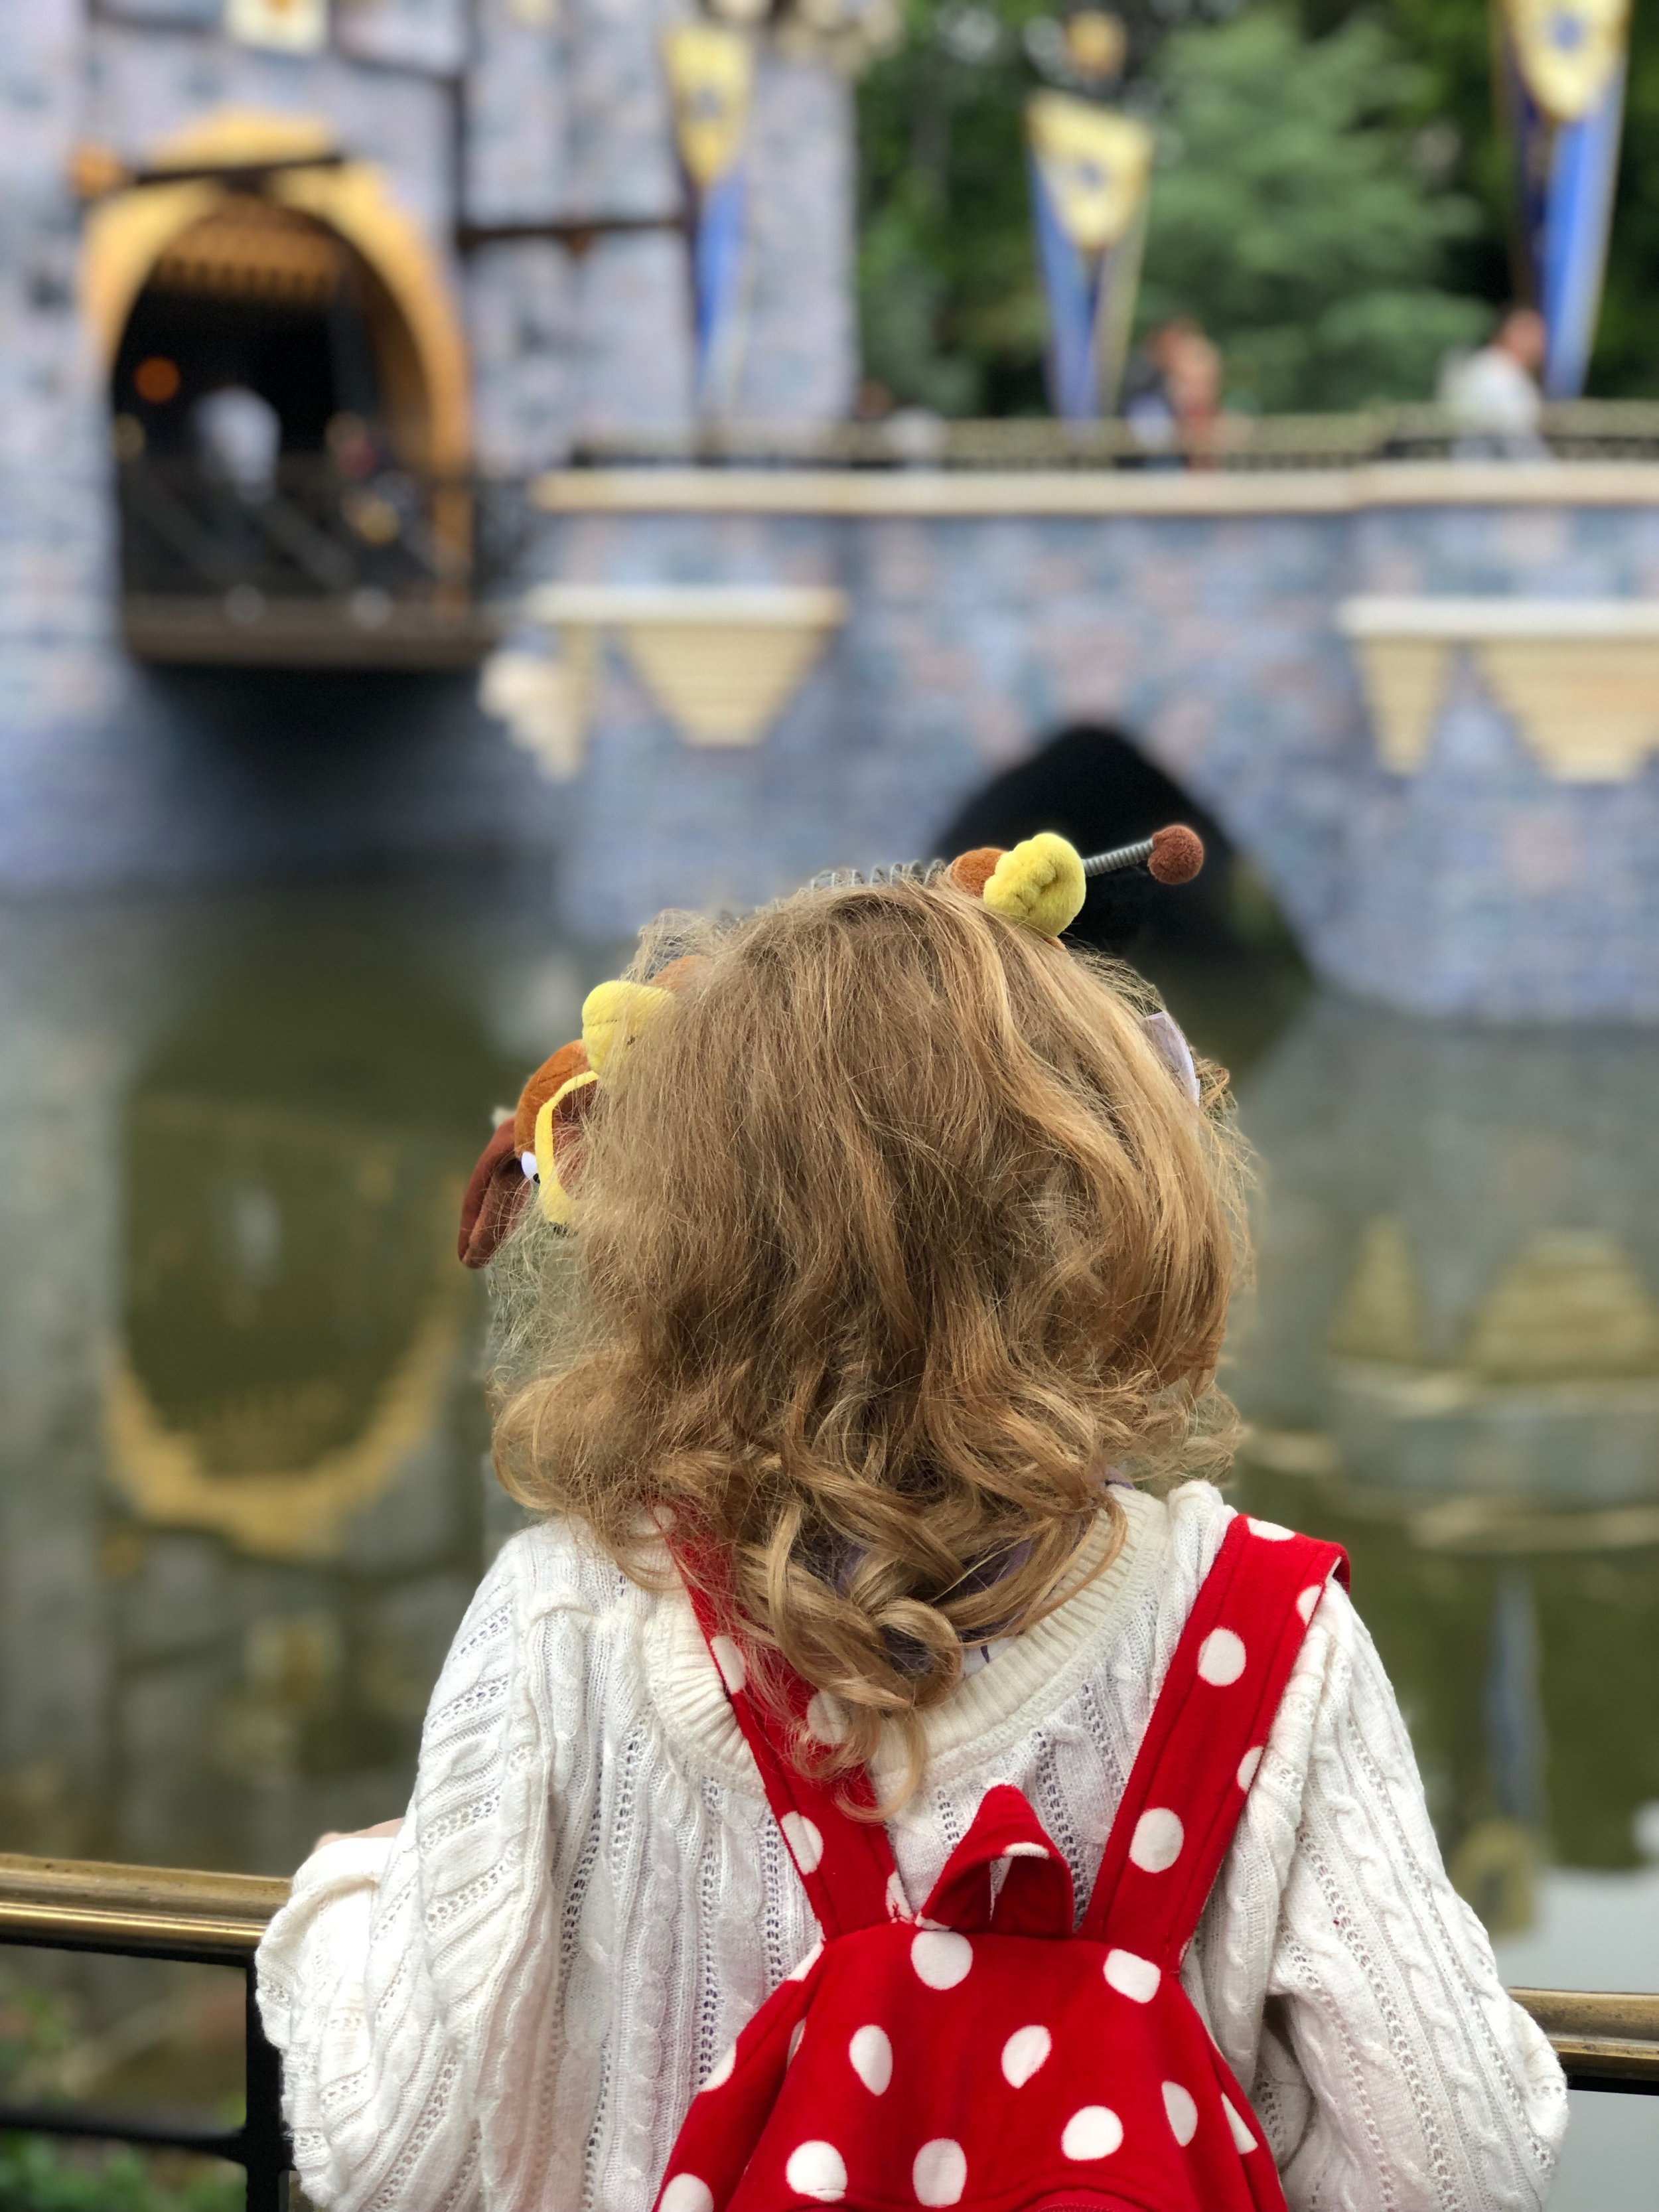 What To Pack In Your Kids Disney Park Bag. #Travel #FamilyTravel #Disney #DisneyWithKids #Disneyland #DisneylandTips #WDW #DisneyWorld #WaltDisneyWorld  #DisneyCaliforniaAdventure